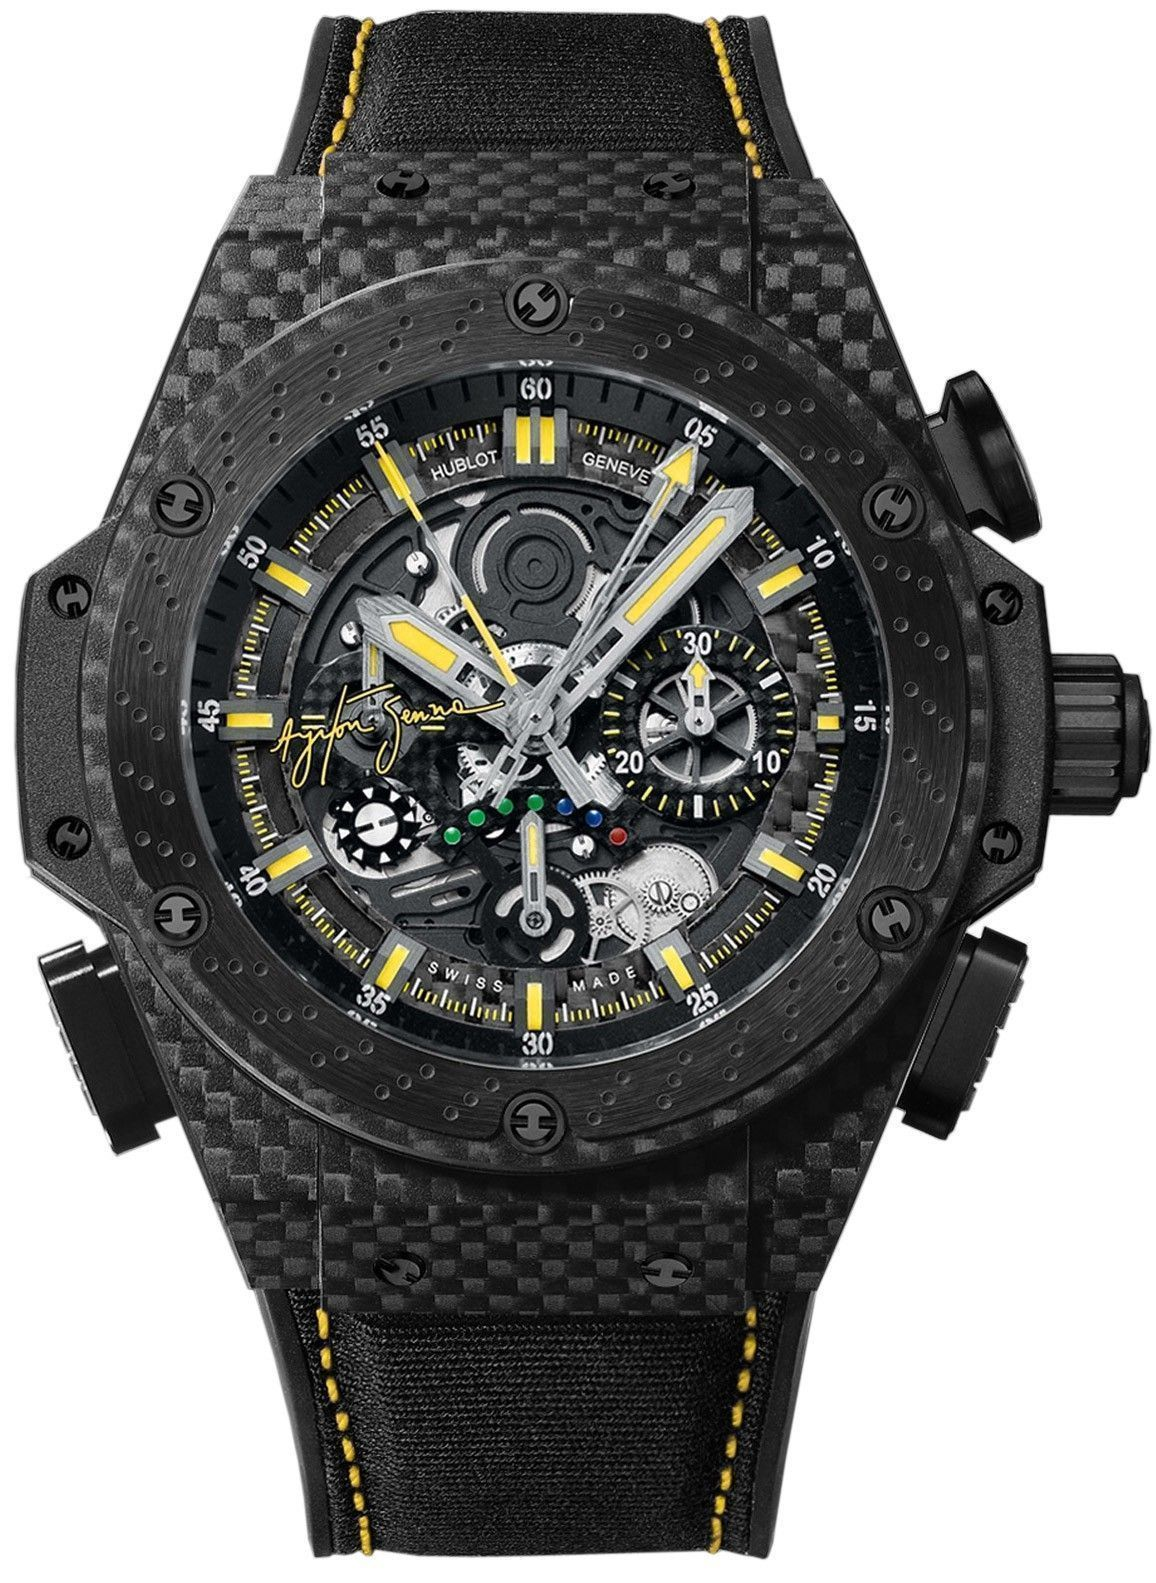 Hublot King Power F1 Ayrton Senna